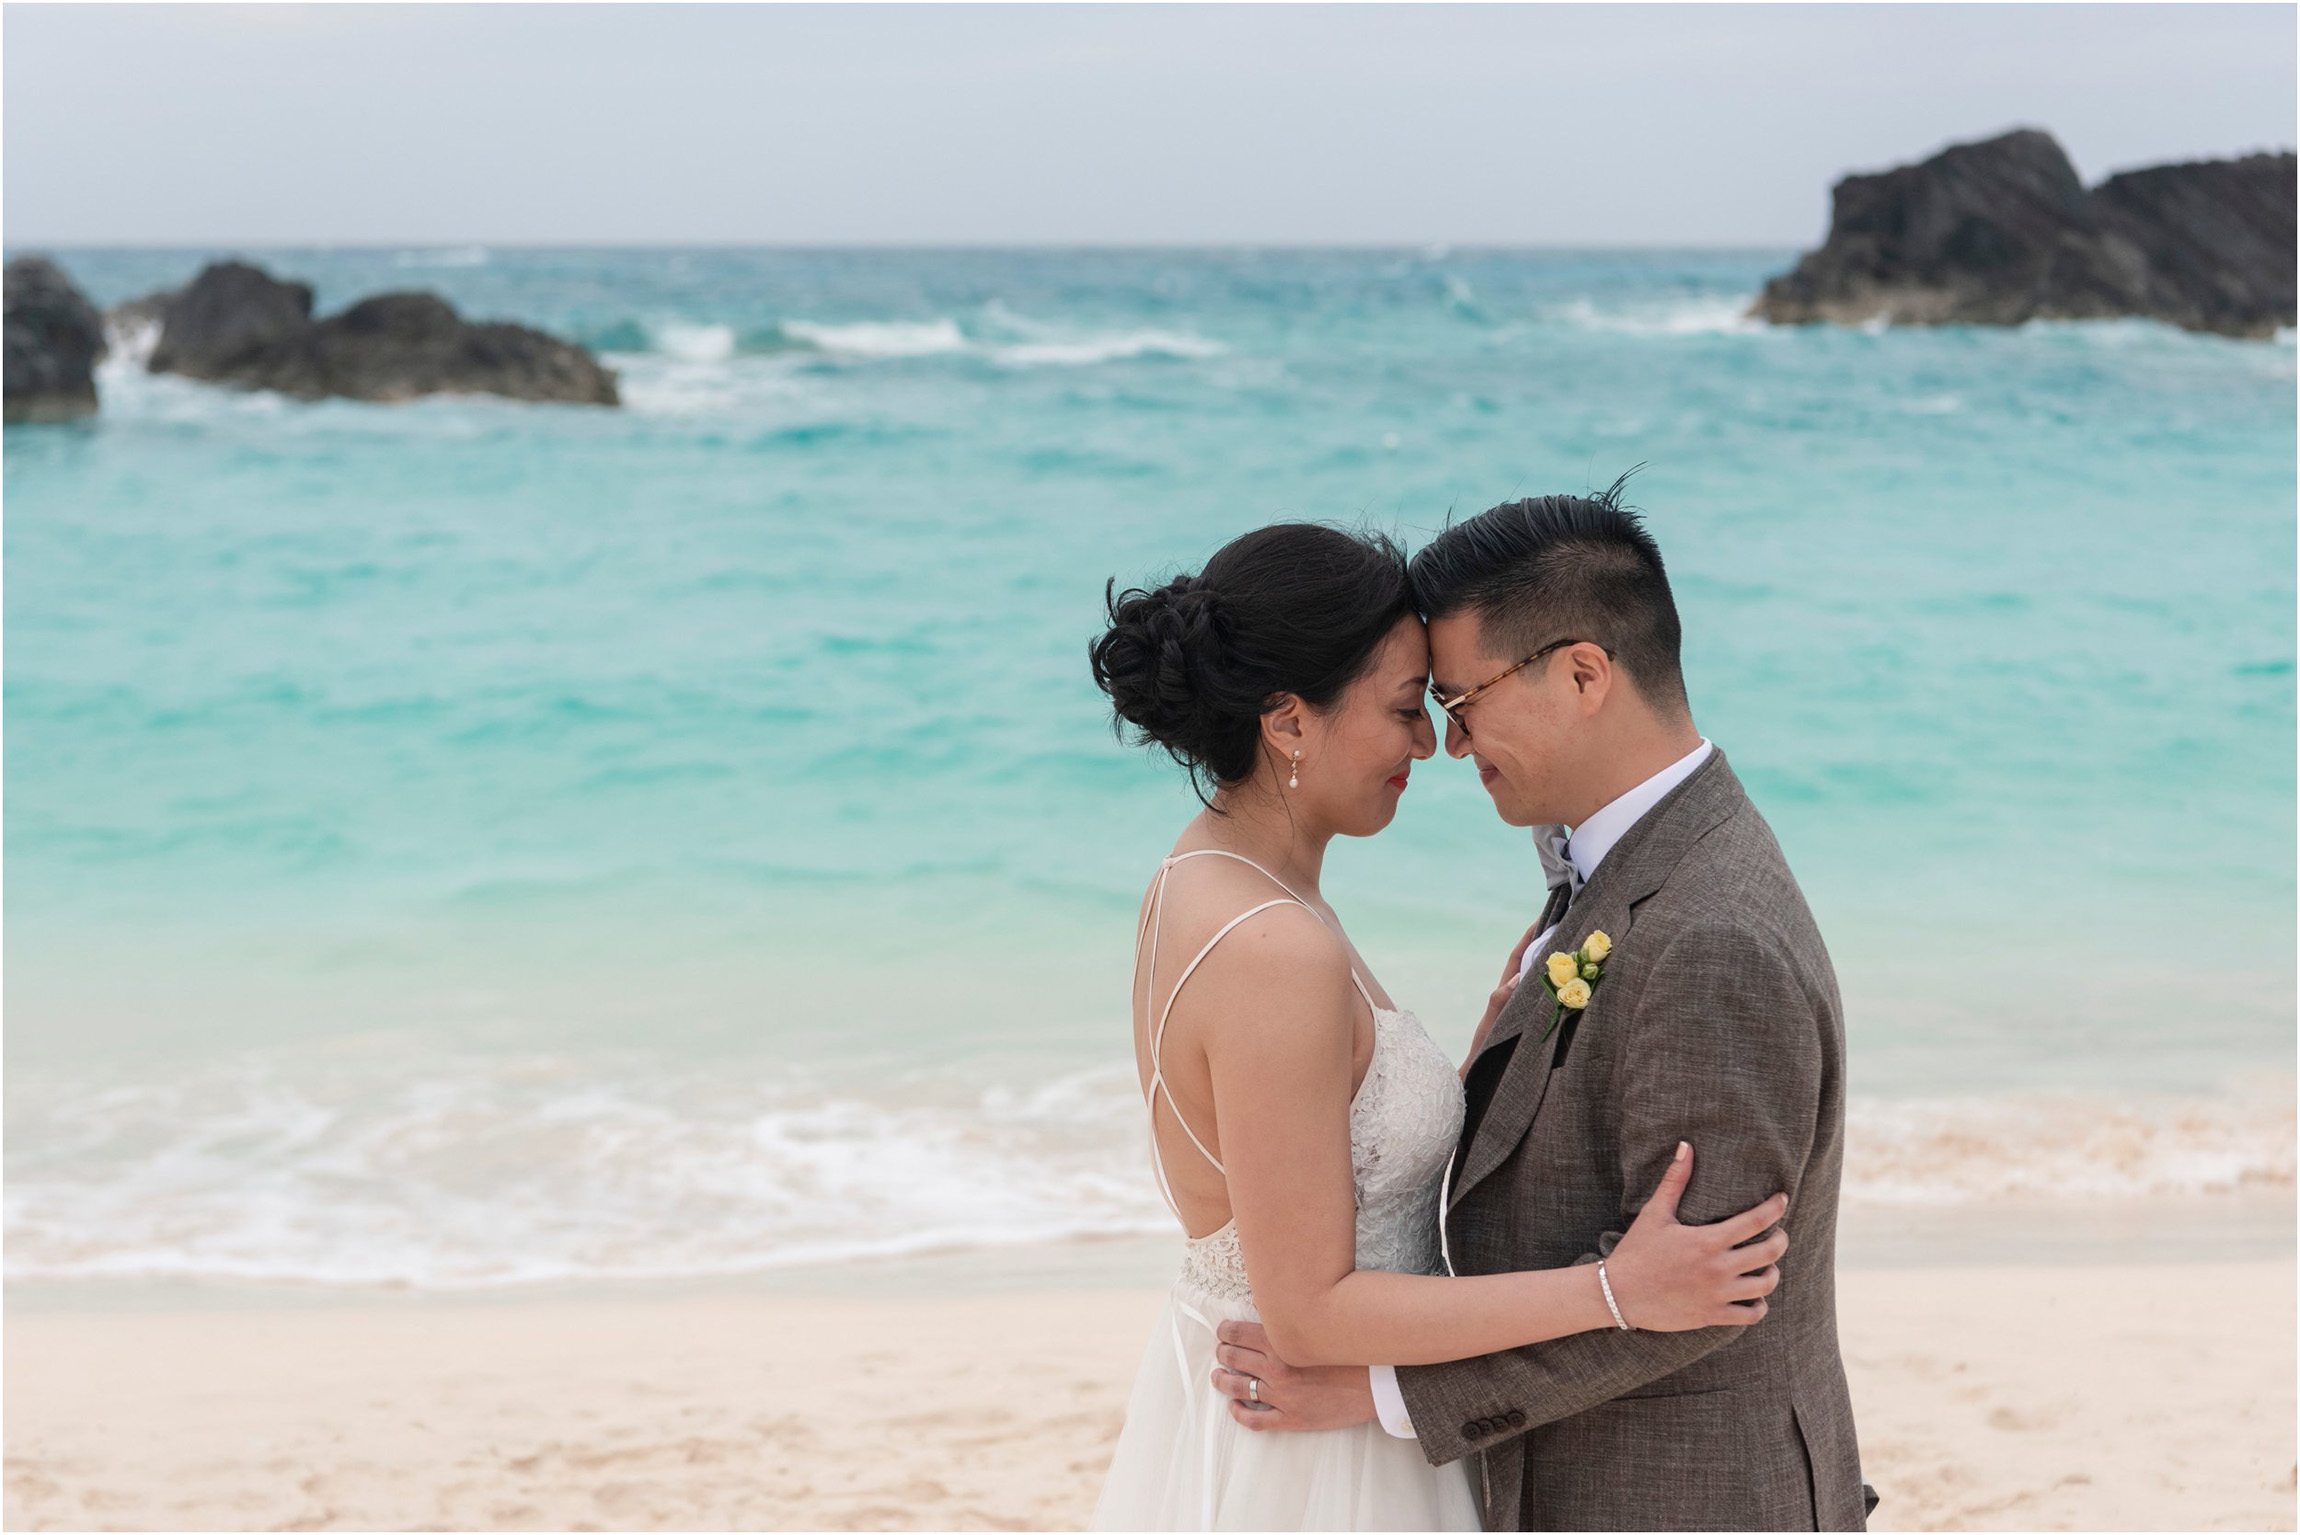 ©FianderFoto_Bermuda Wedding Photographer_Fairmont Southampton_Amy_Wilson_098.jpg